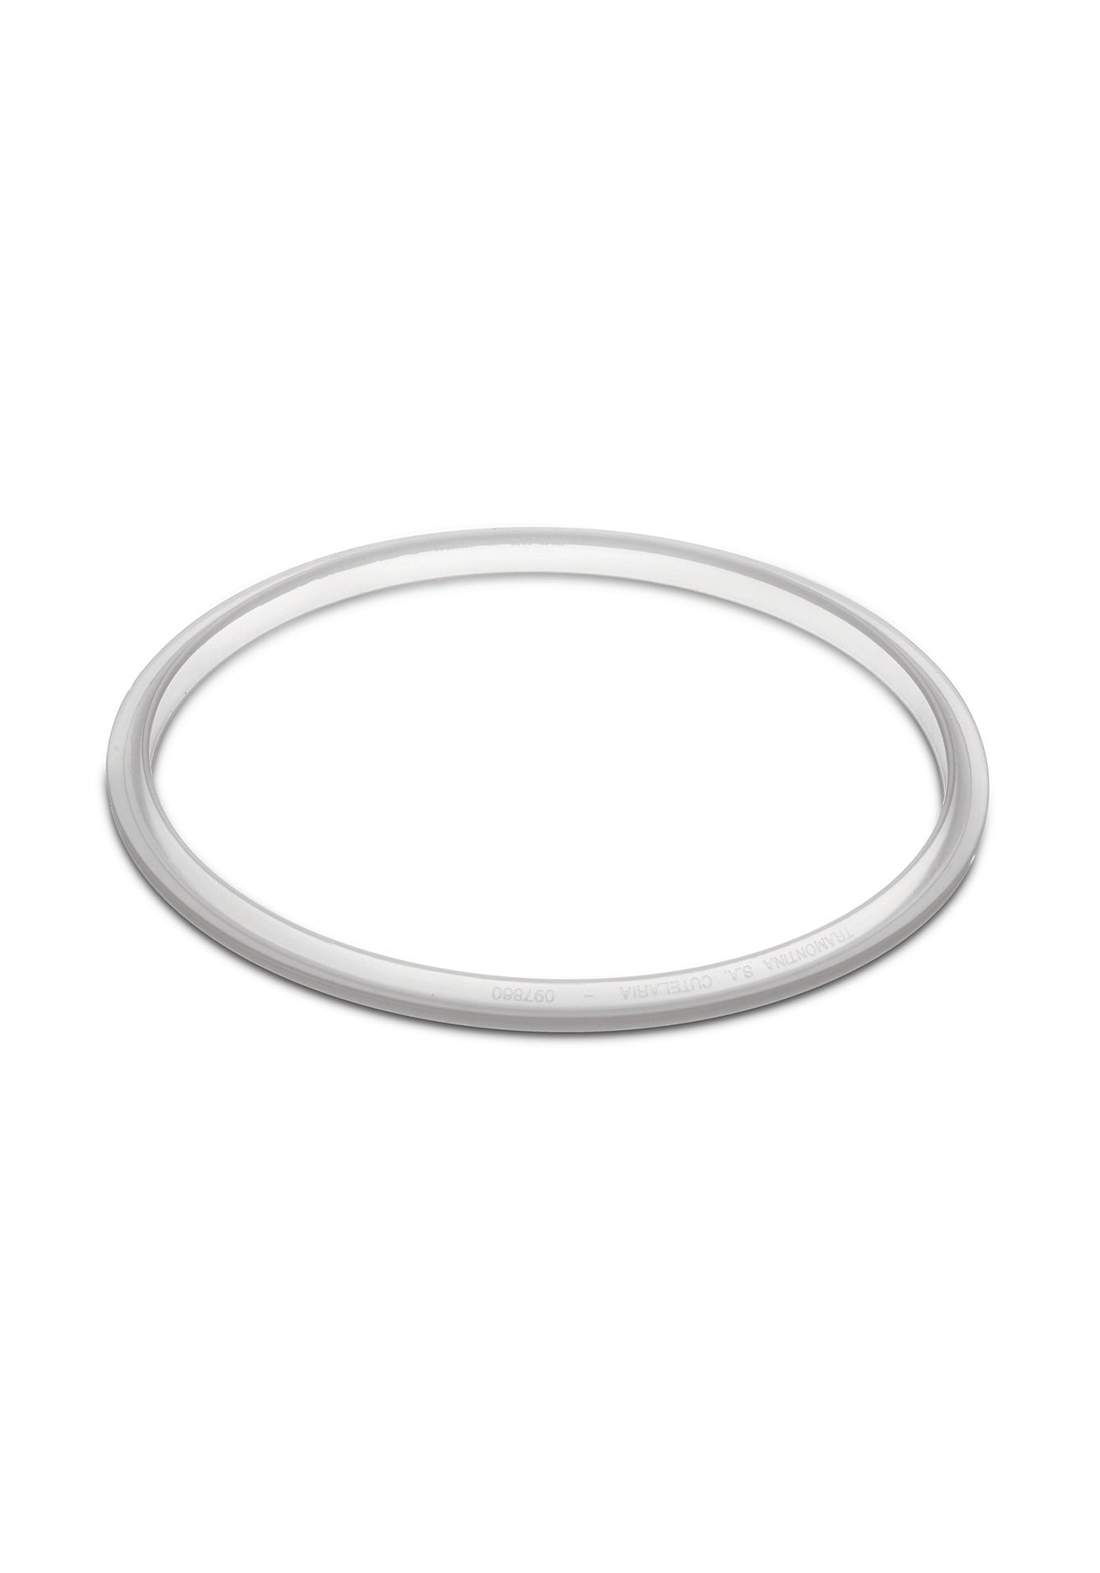 Tramontina '20579-002 Silicone Ring For Pressure Cooker 24 cm  White واشر لقدر الضغط